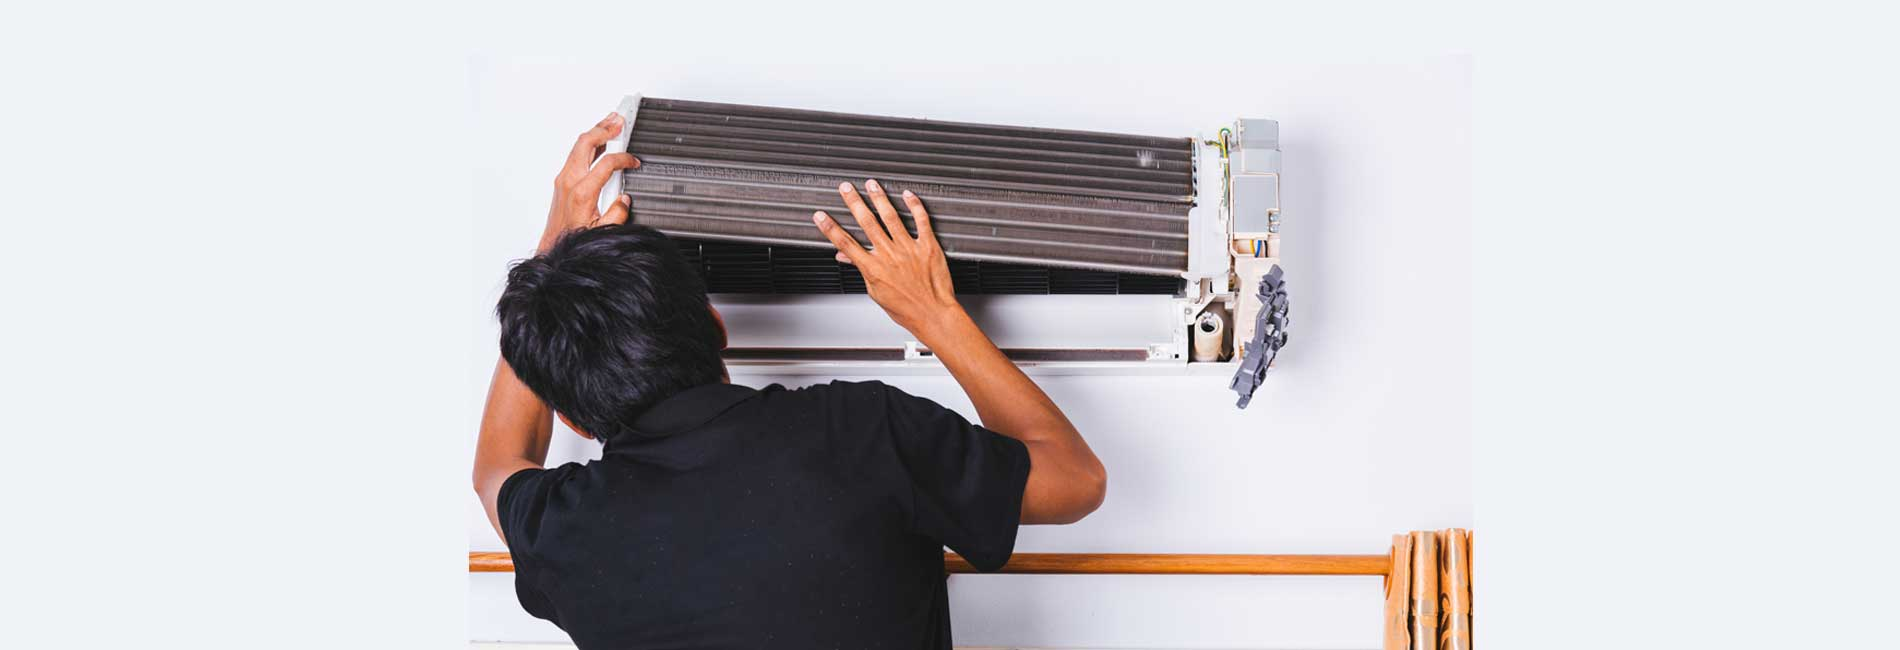 Panasonic AC Installation in Royapuram